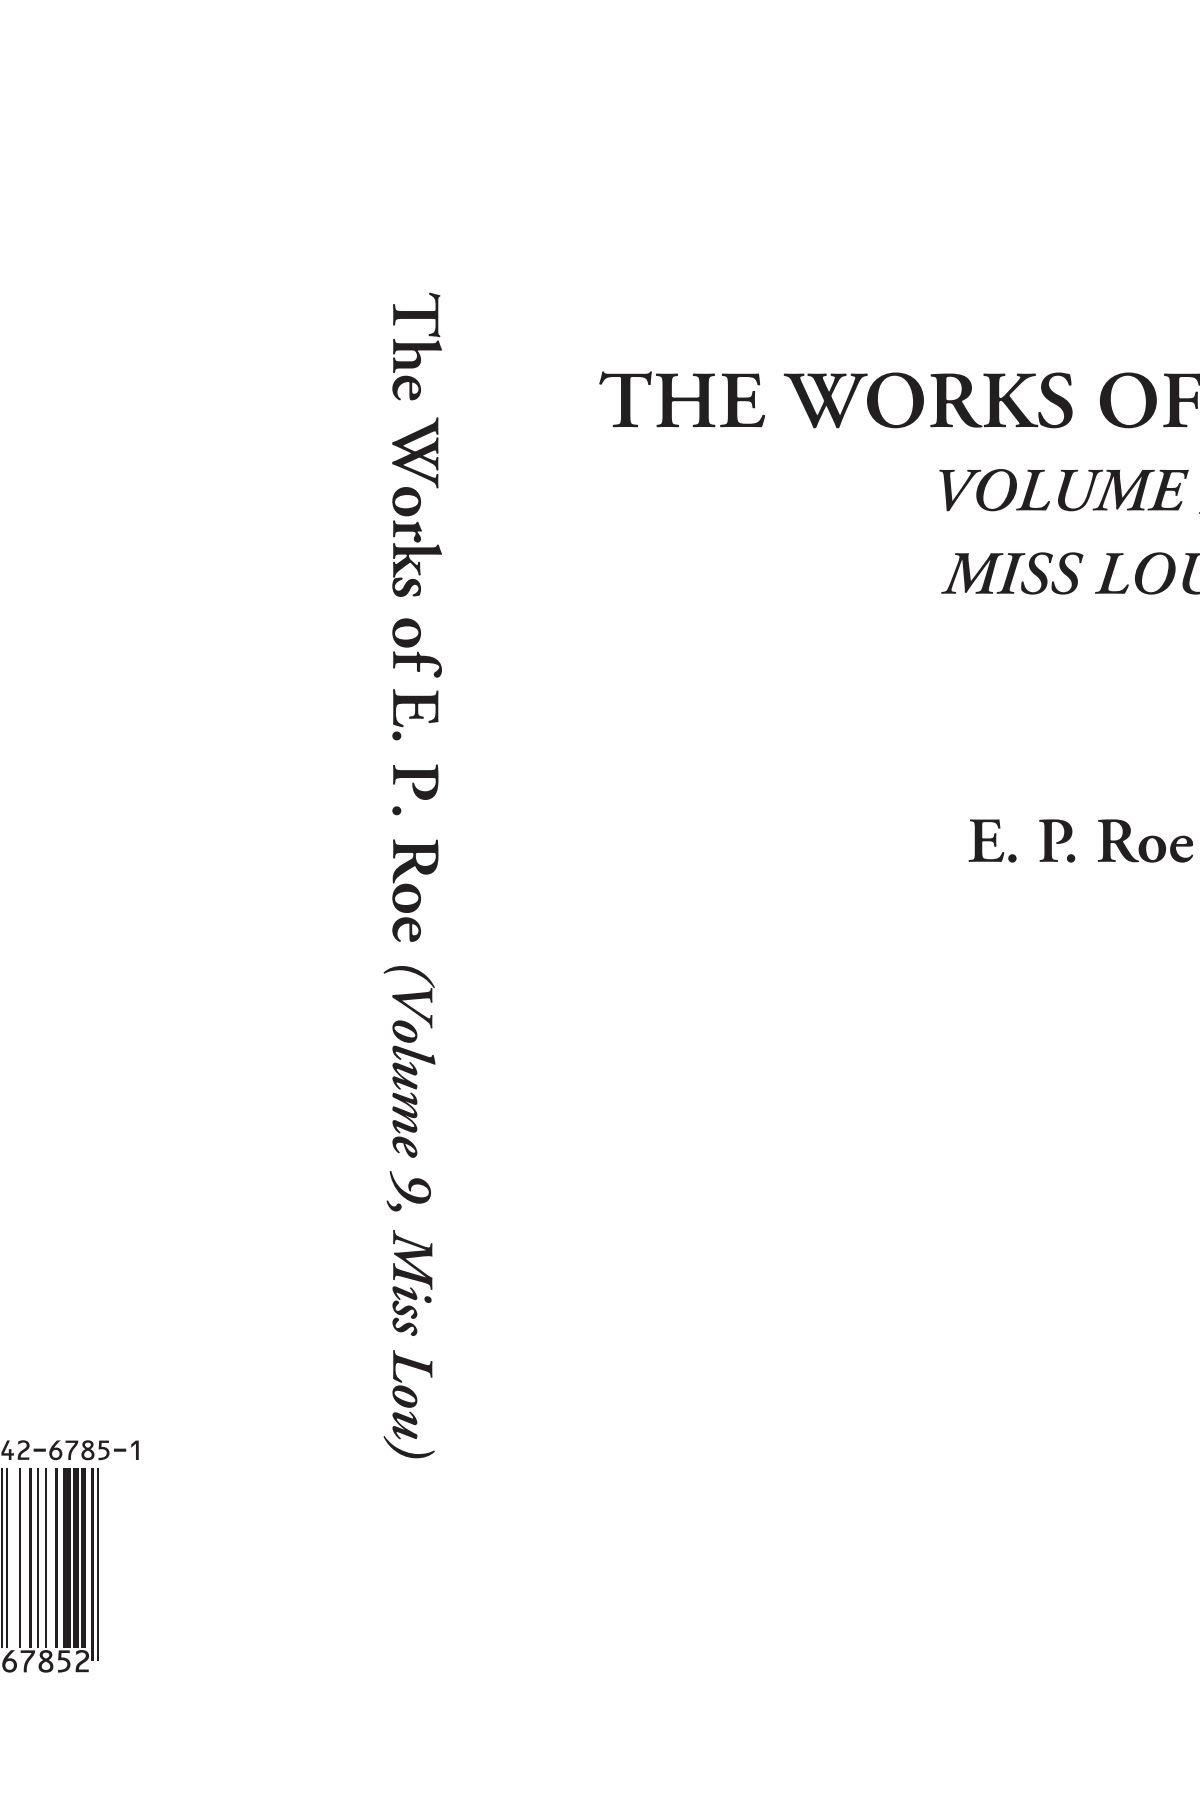 The Works of E. P. Roe (Volume 9, Miss Lou) ebook